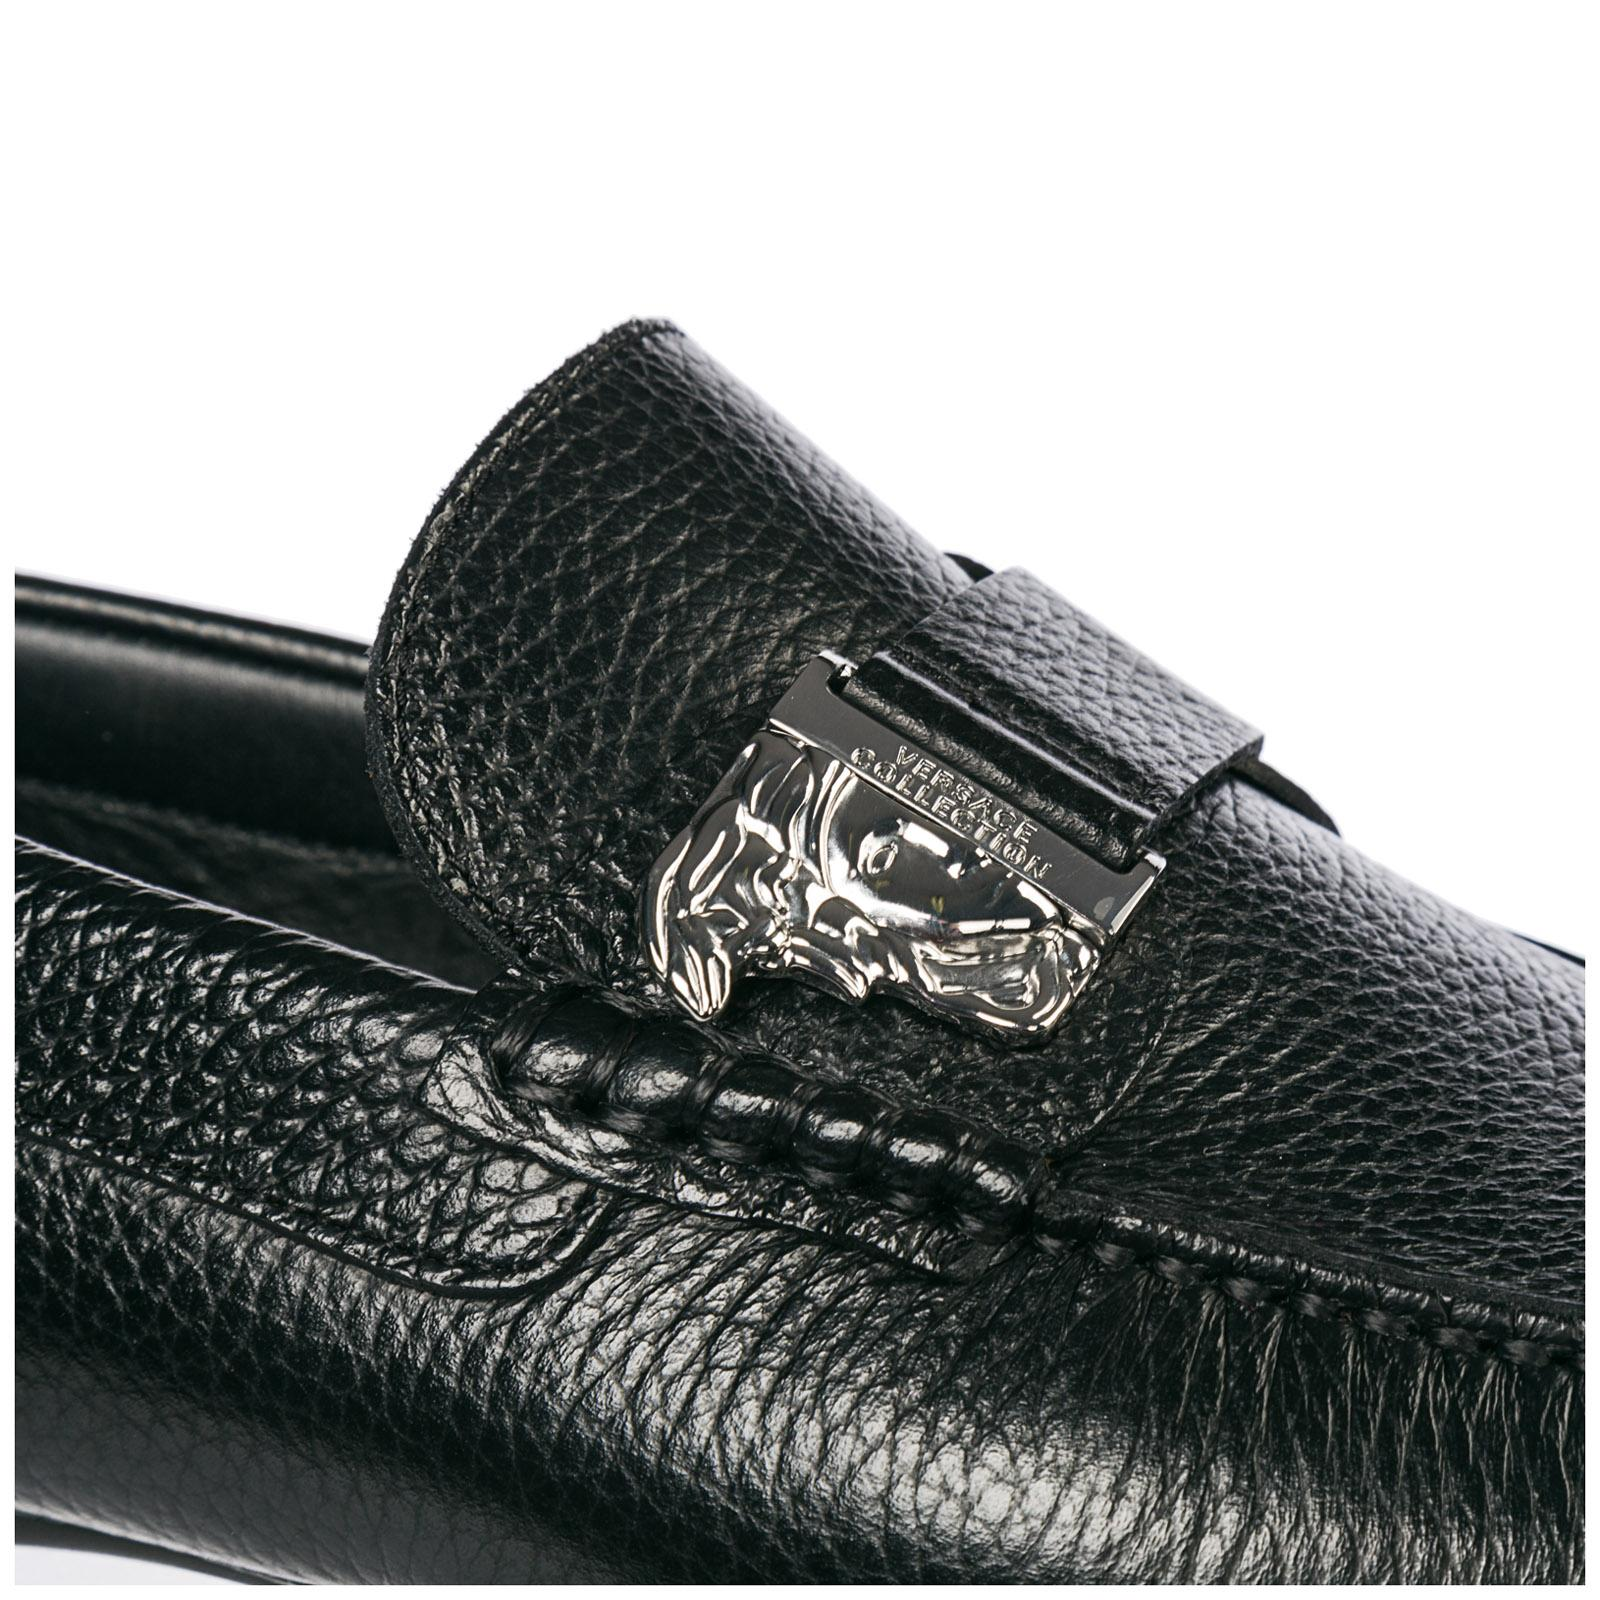 b7bf72572a8 Versace - Black Leather Loafers Moccasins Medusa for Men - Lyst. View  fullscreen